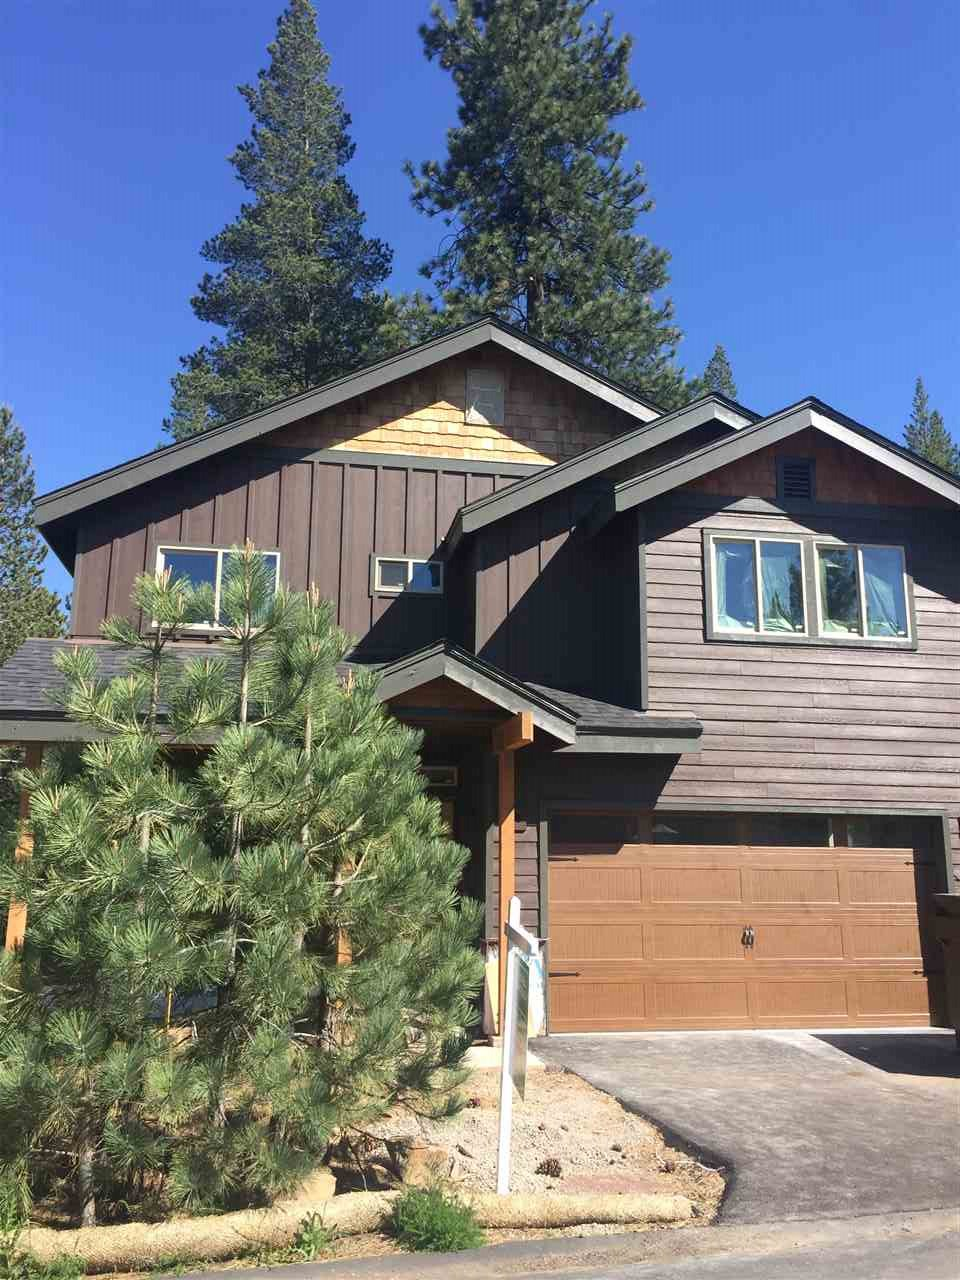 Image for 11336 Wolverine Circle, Truckee, CA 96161